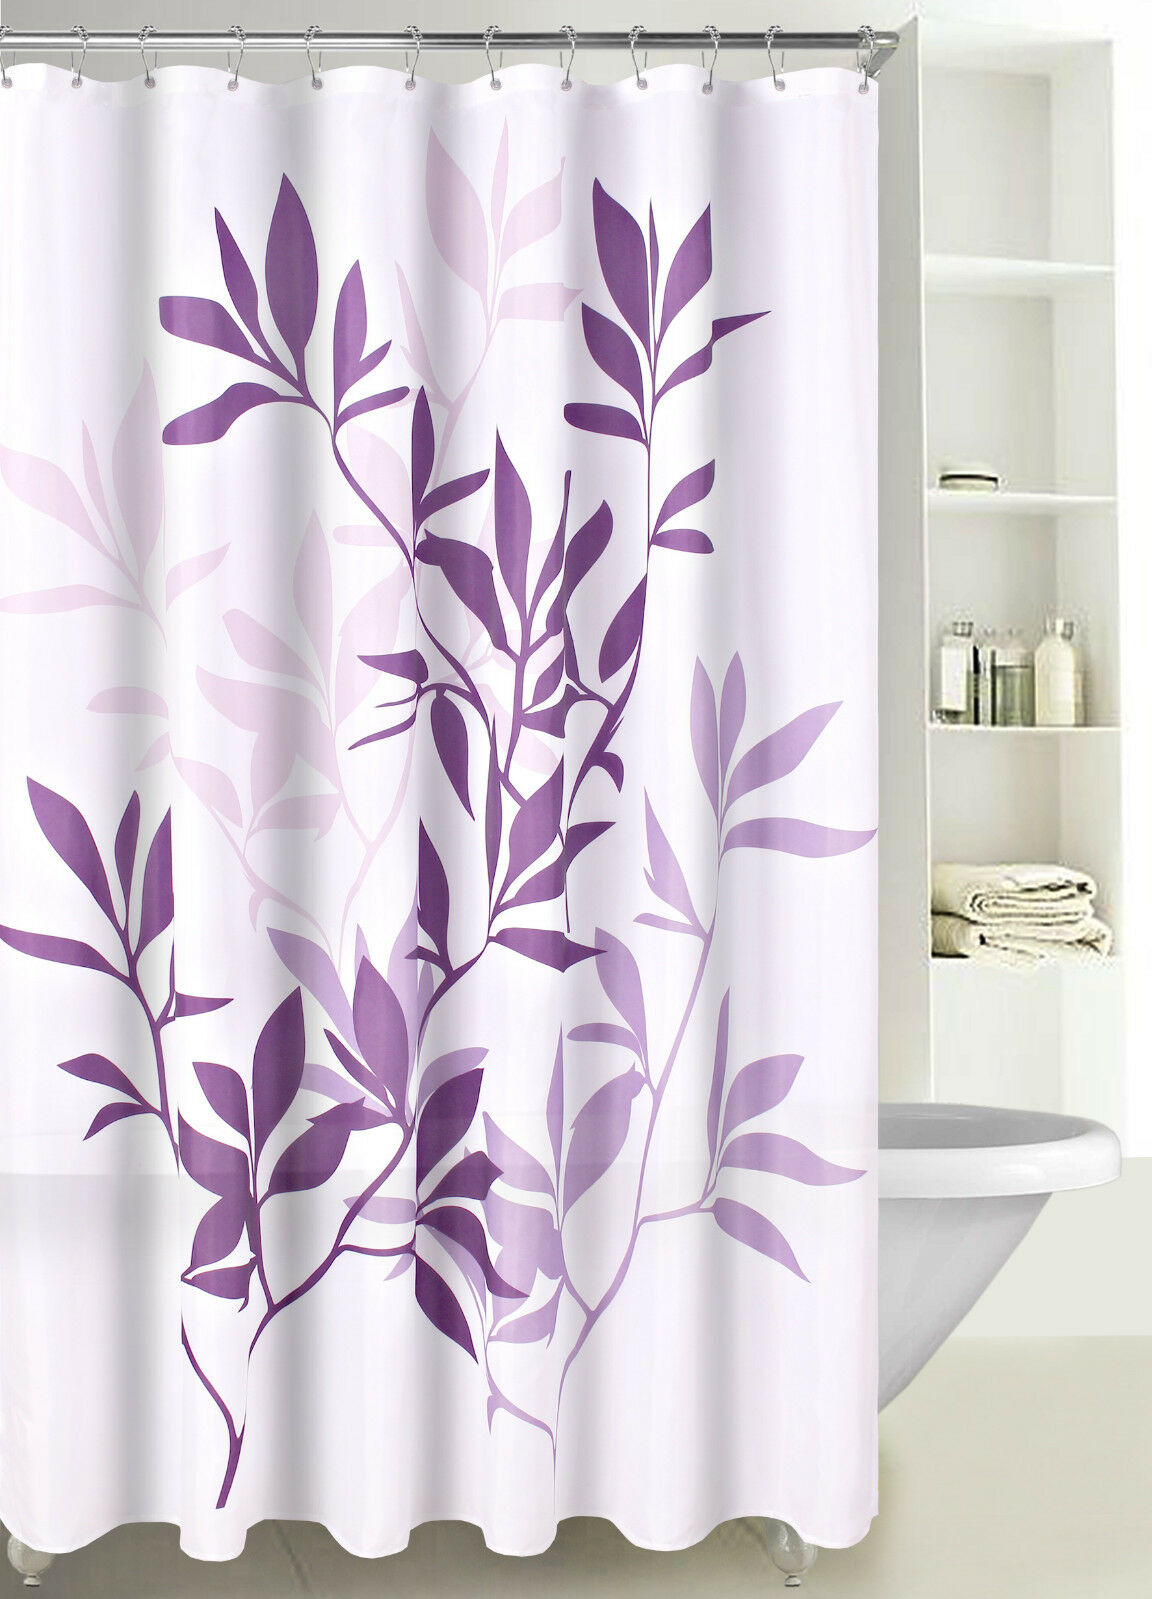 Cute Girly Shower Curtains Fabric Shower Curtain Multicolor Forest